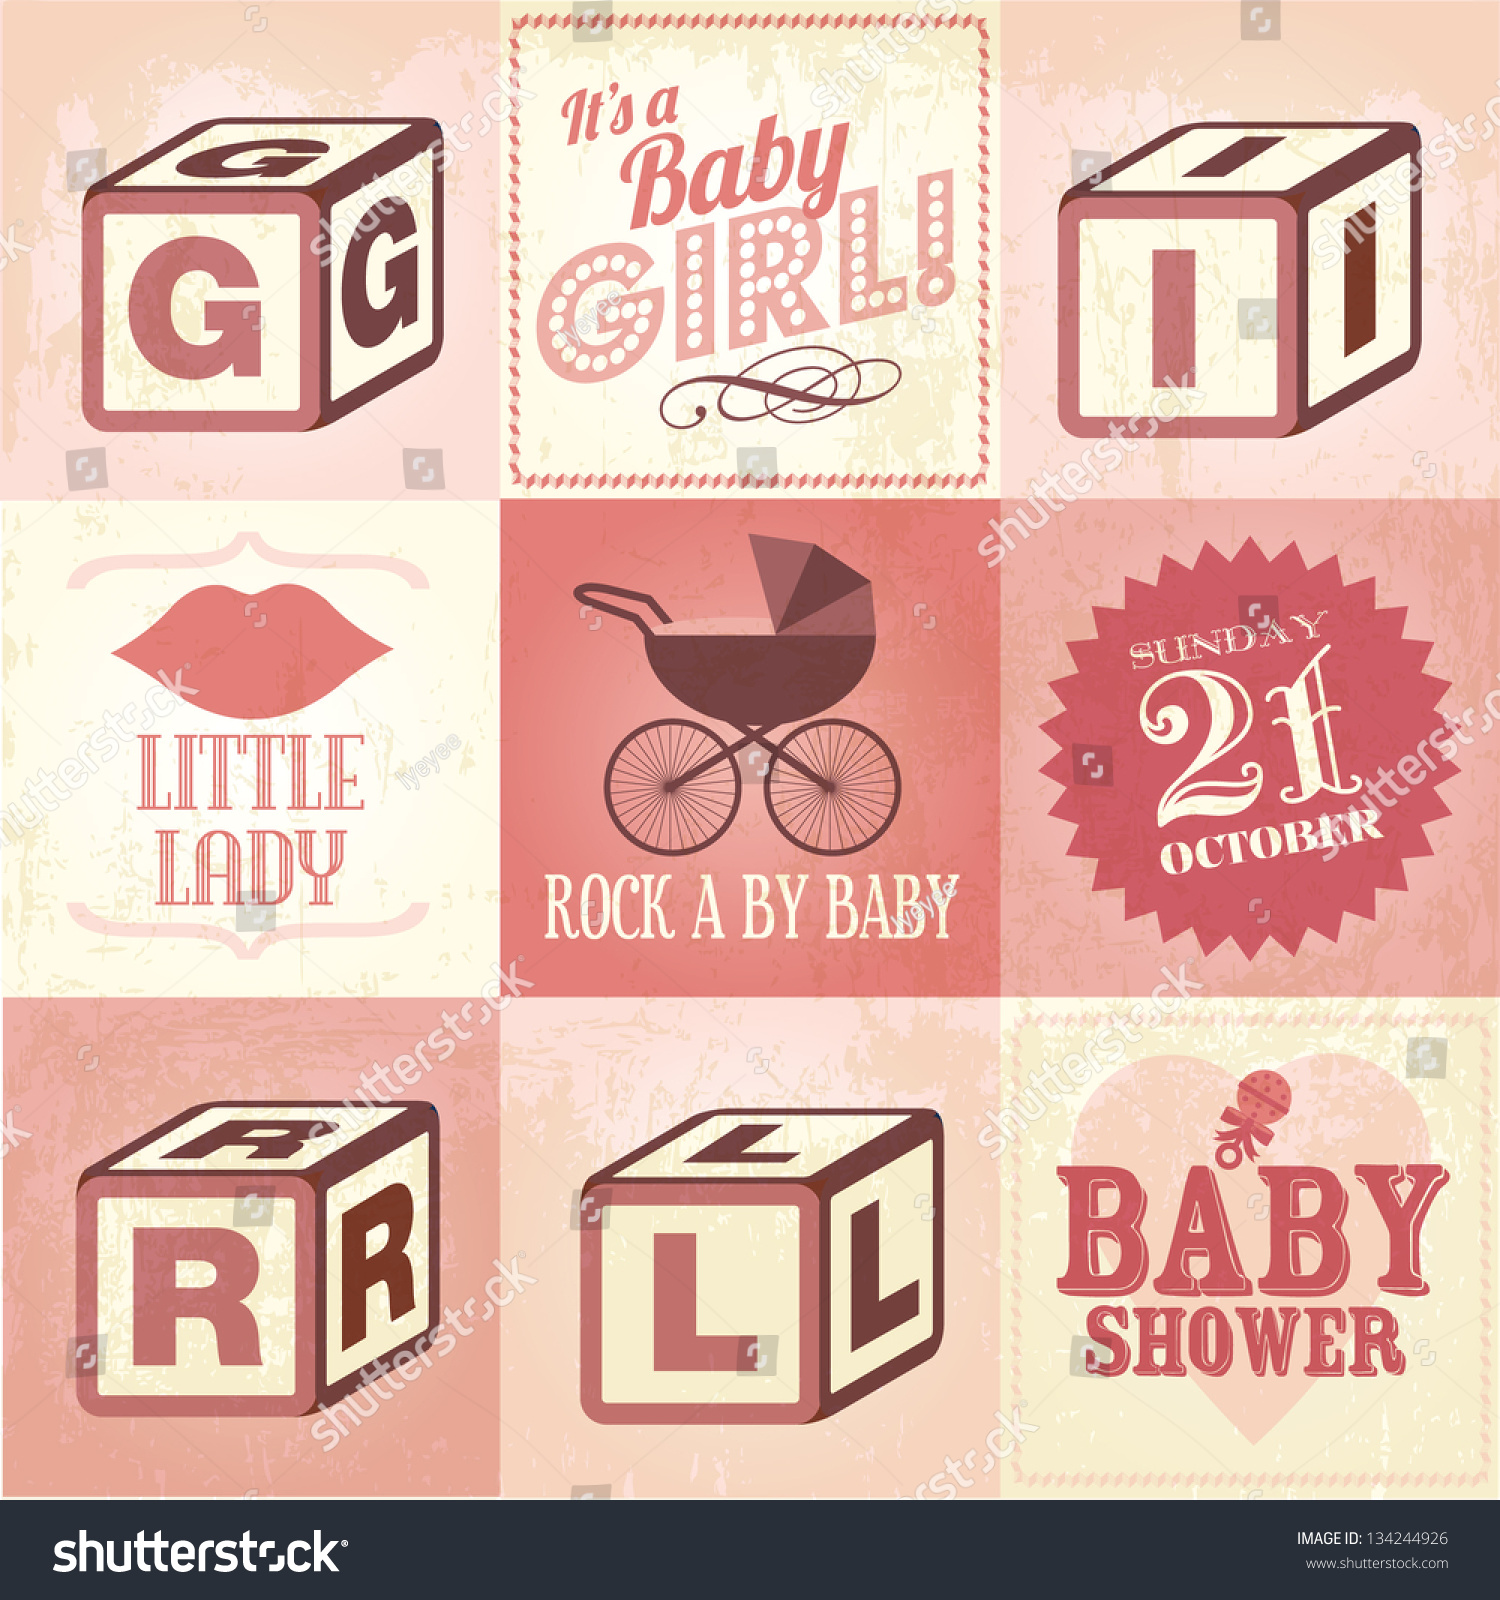 Vintage Baby Shower Card Template Invitation Stock Vector Royalty